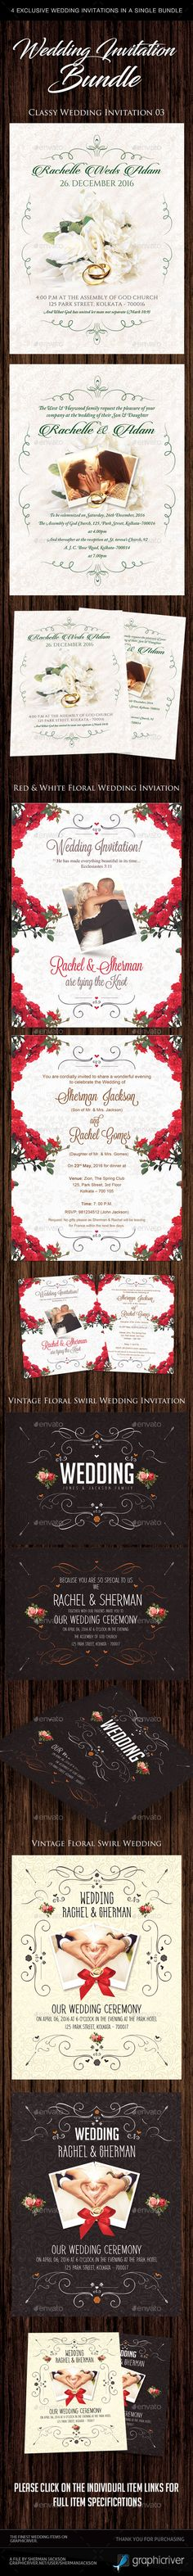 card templates for wedding invitation%0A Resume Template Download Free